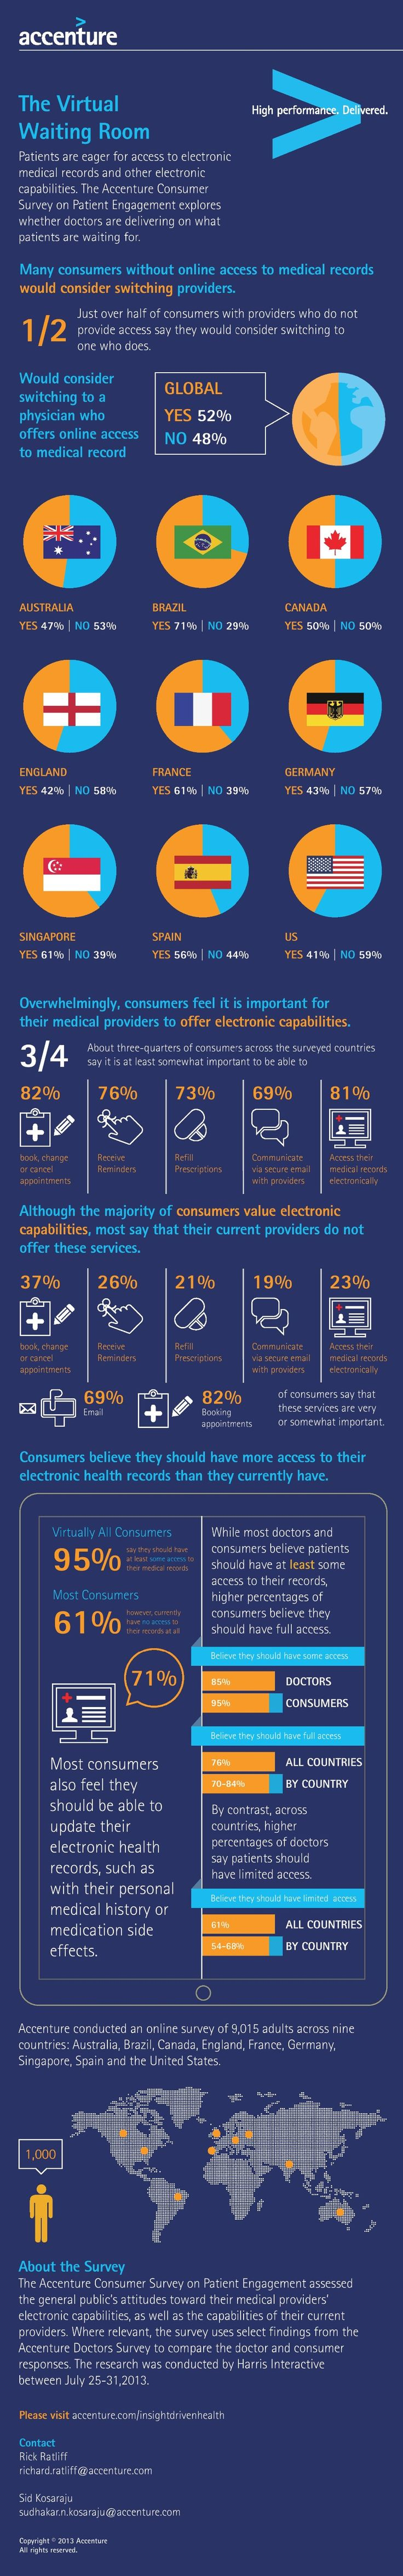 Infographic: Patients Want Access To Their Electronic Medical Records